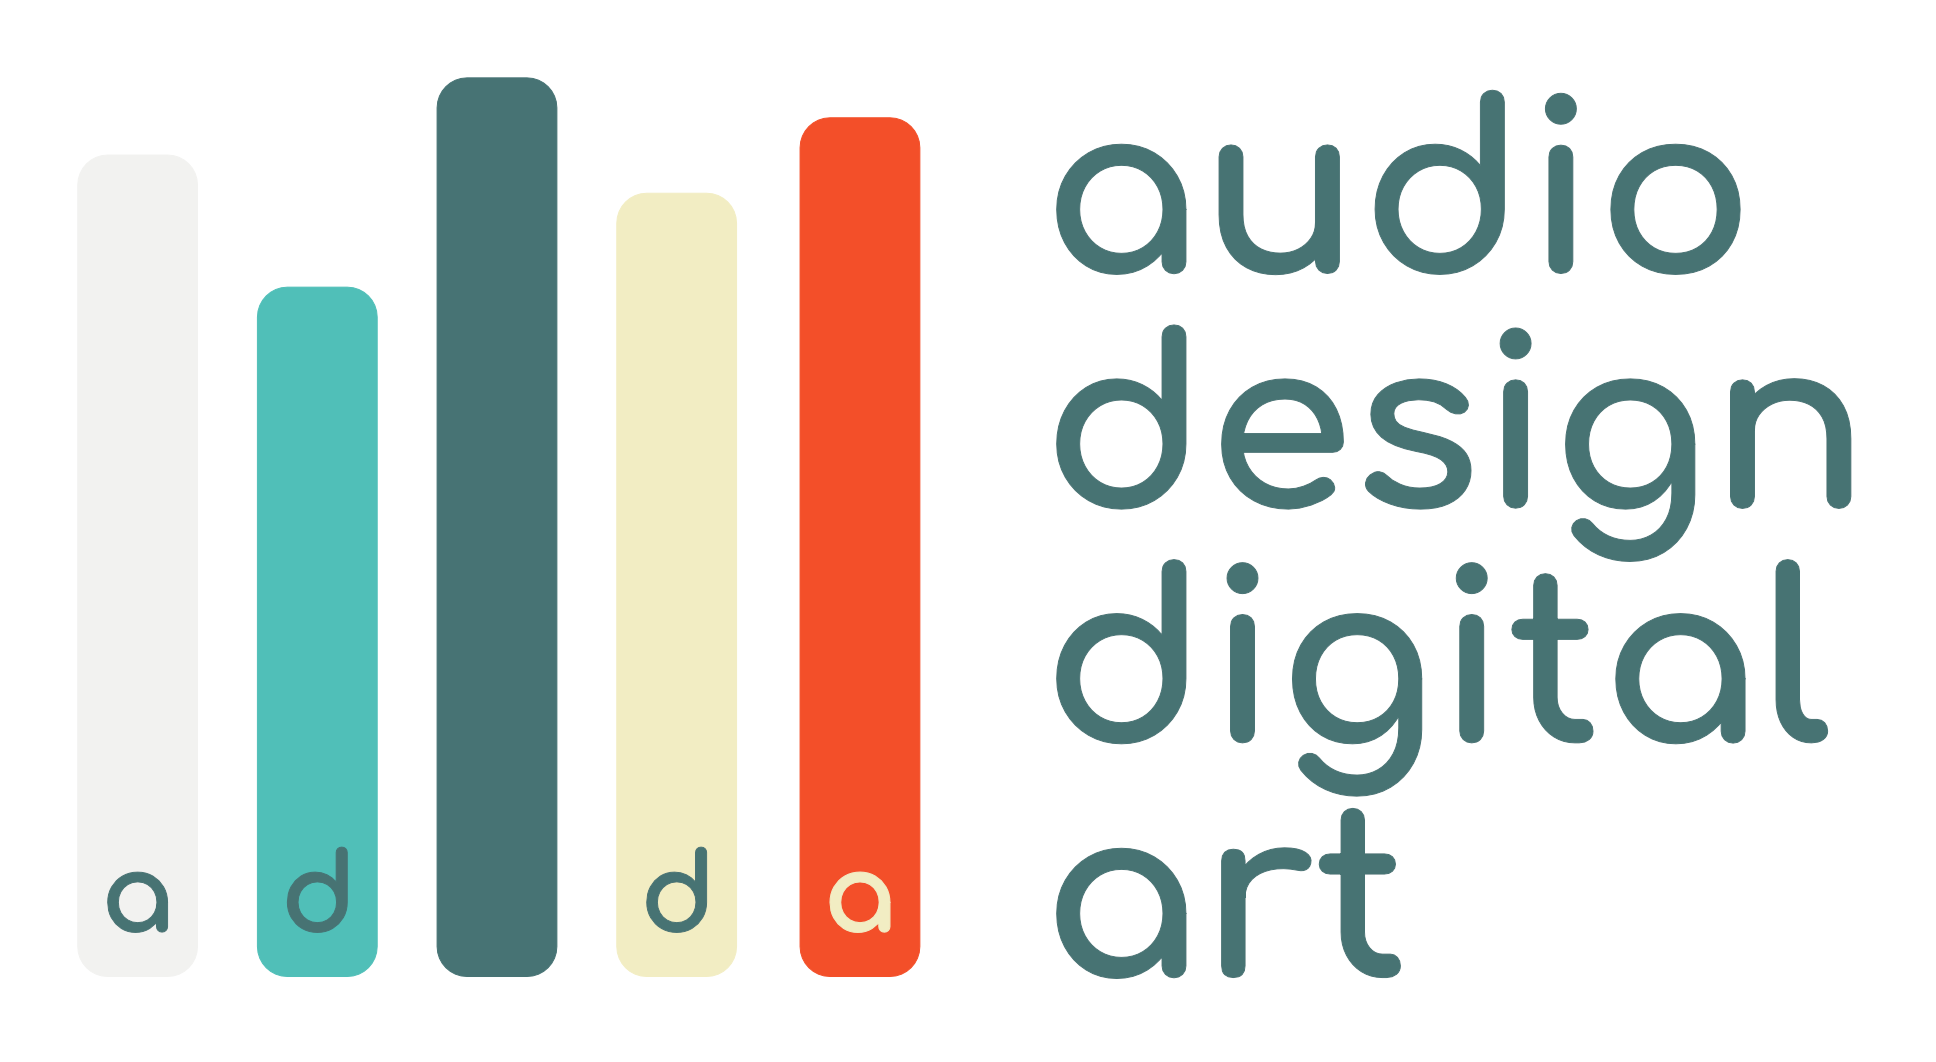 Audio Design Digital Art